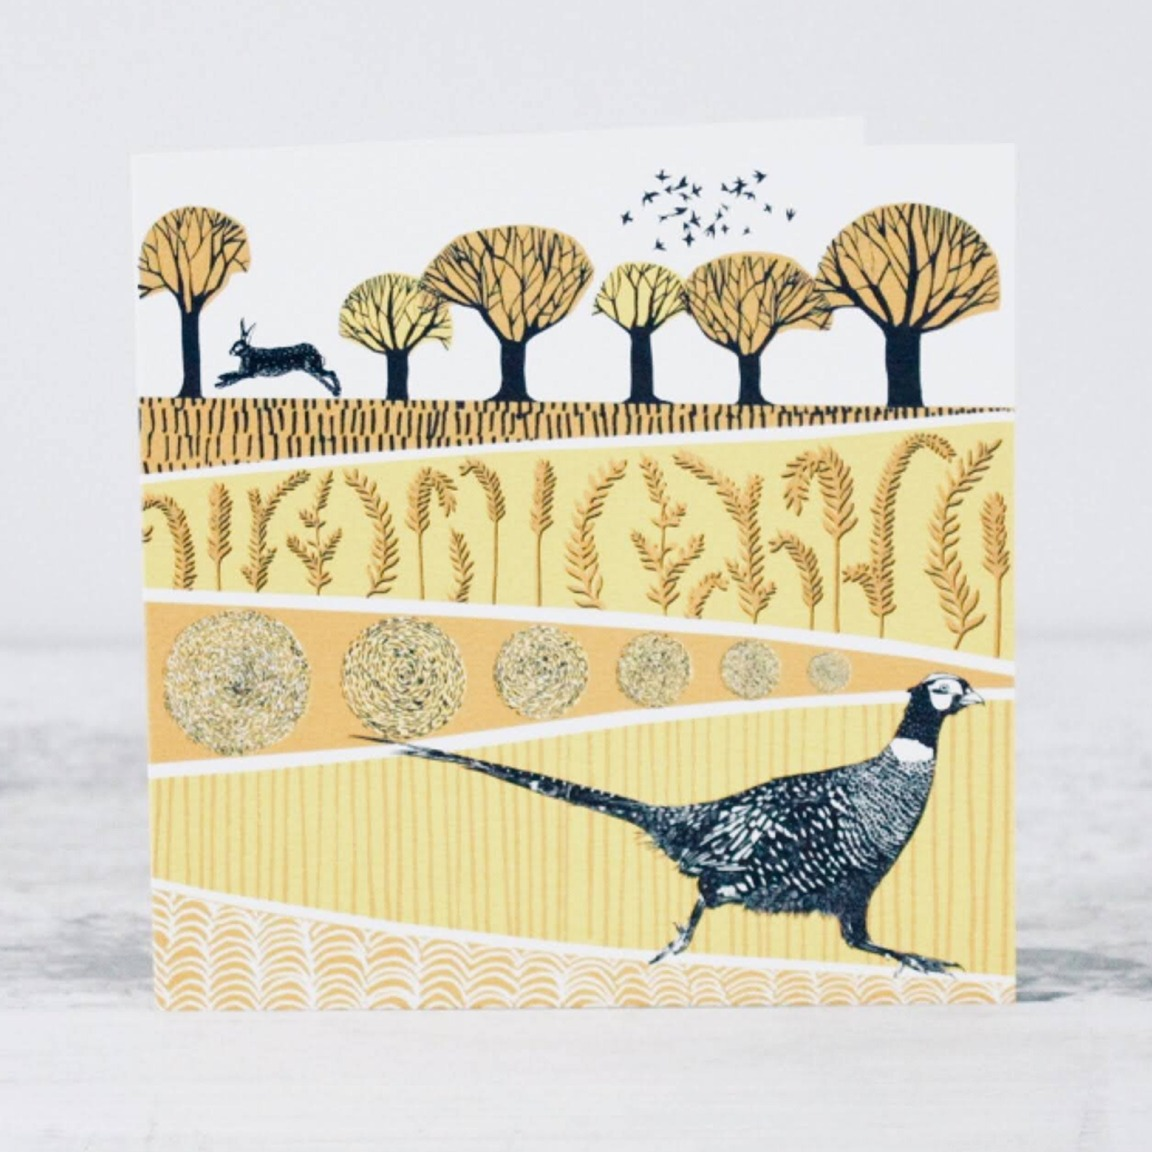 Pheasant Card by Folded Forest